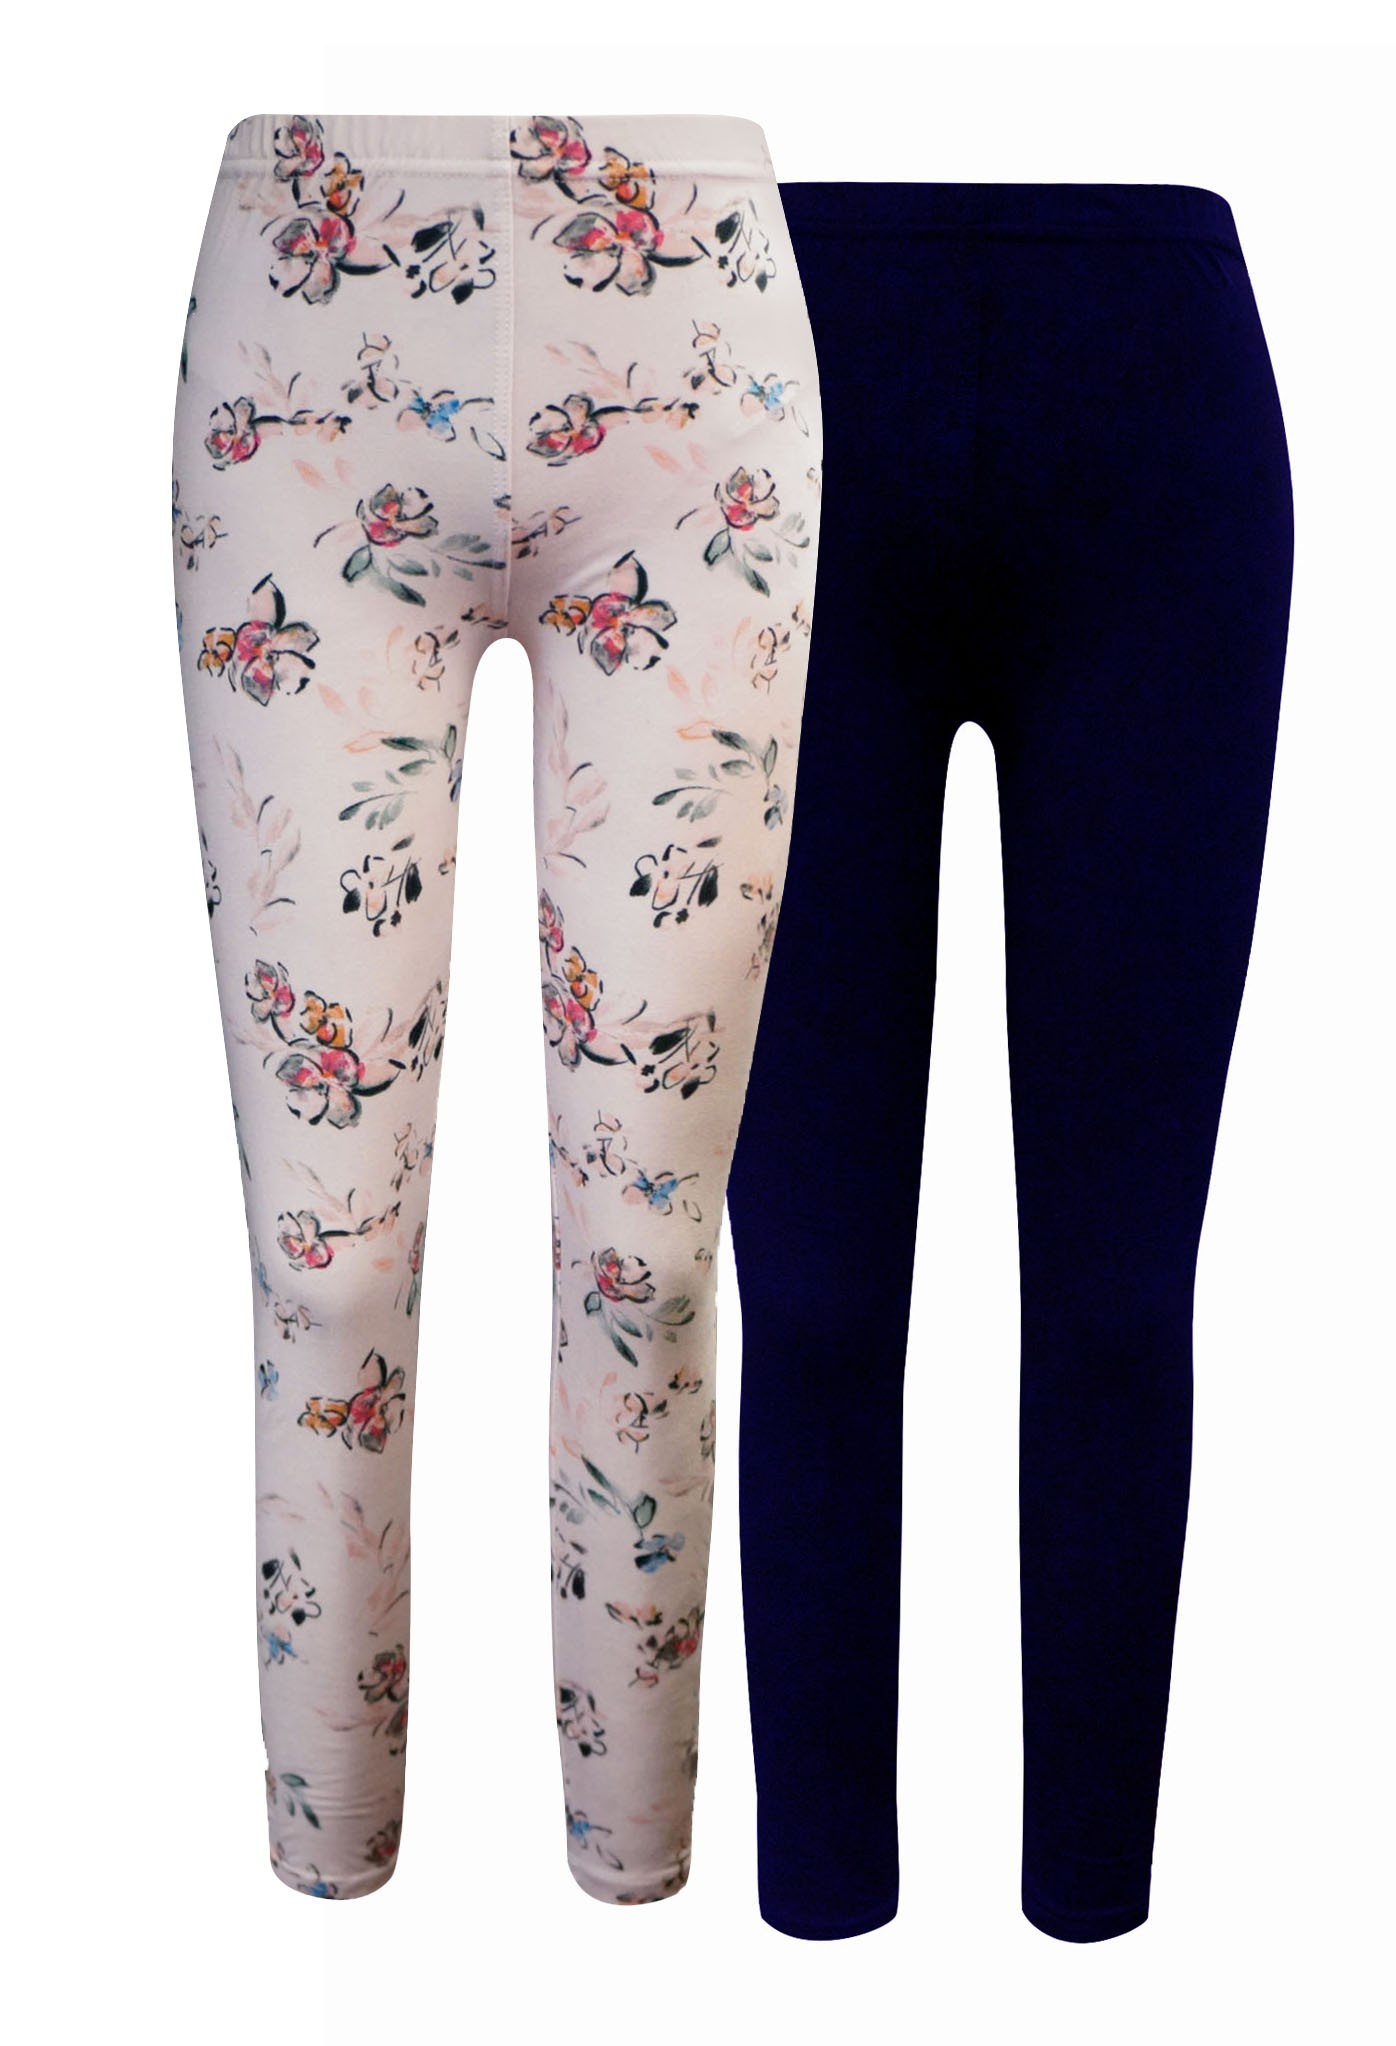 KIDS NAVY, PINK FLORAL PRINT BRUSH POLY LEGGING (2 PACK)(7/8, 10/12)#X2K8L54-08